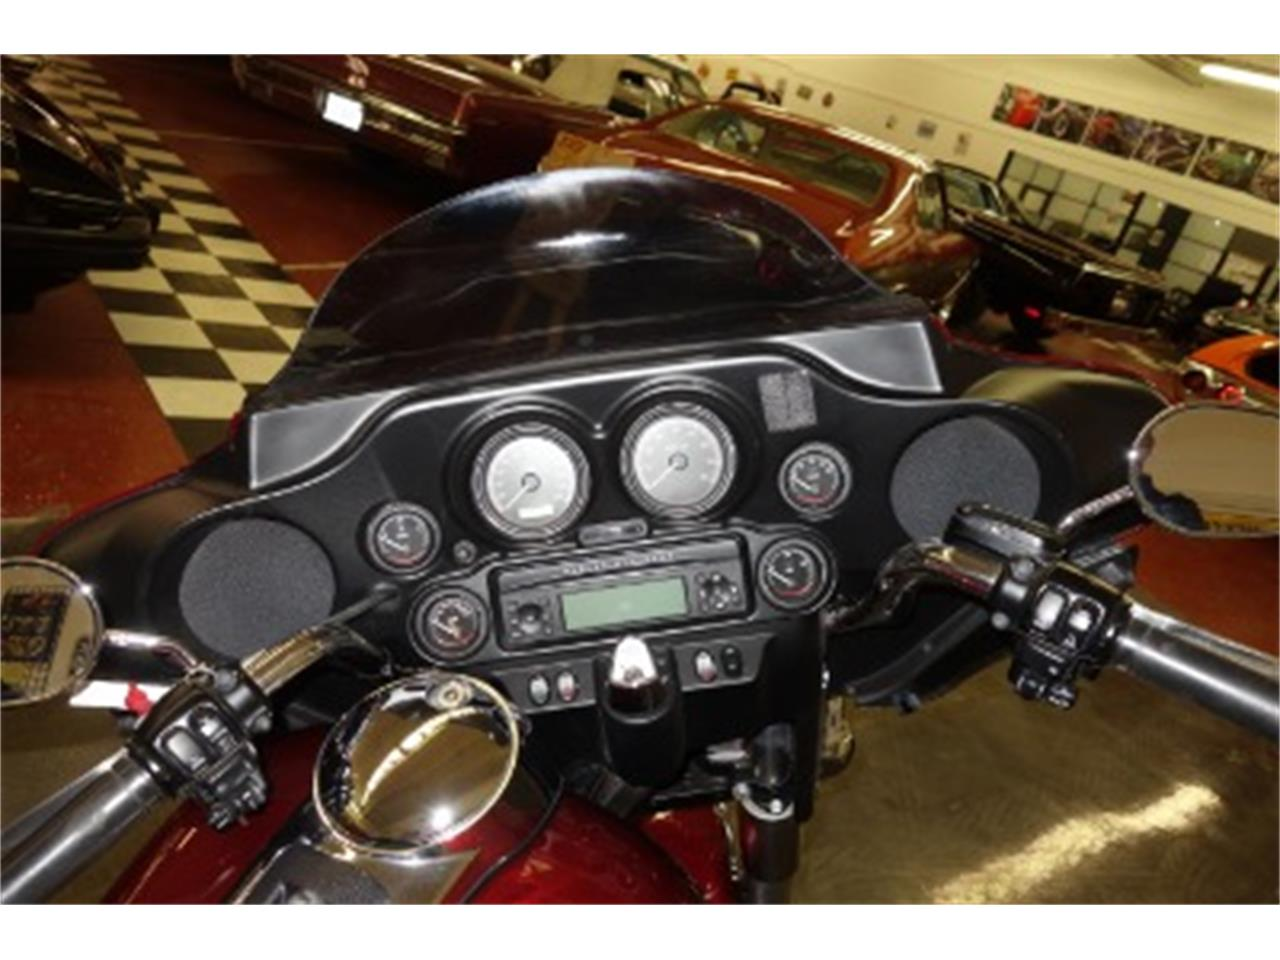 Large Picture of 2009 Harley-Davidson Motorcycle - $10,900.00 Offered by North Shore Classics - OY9K